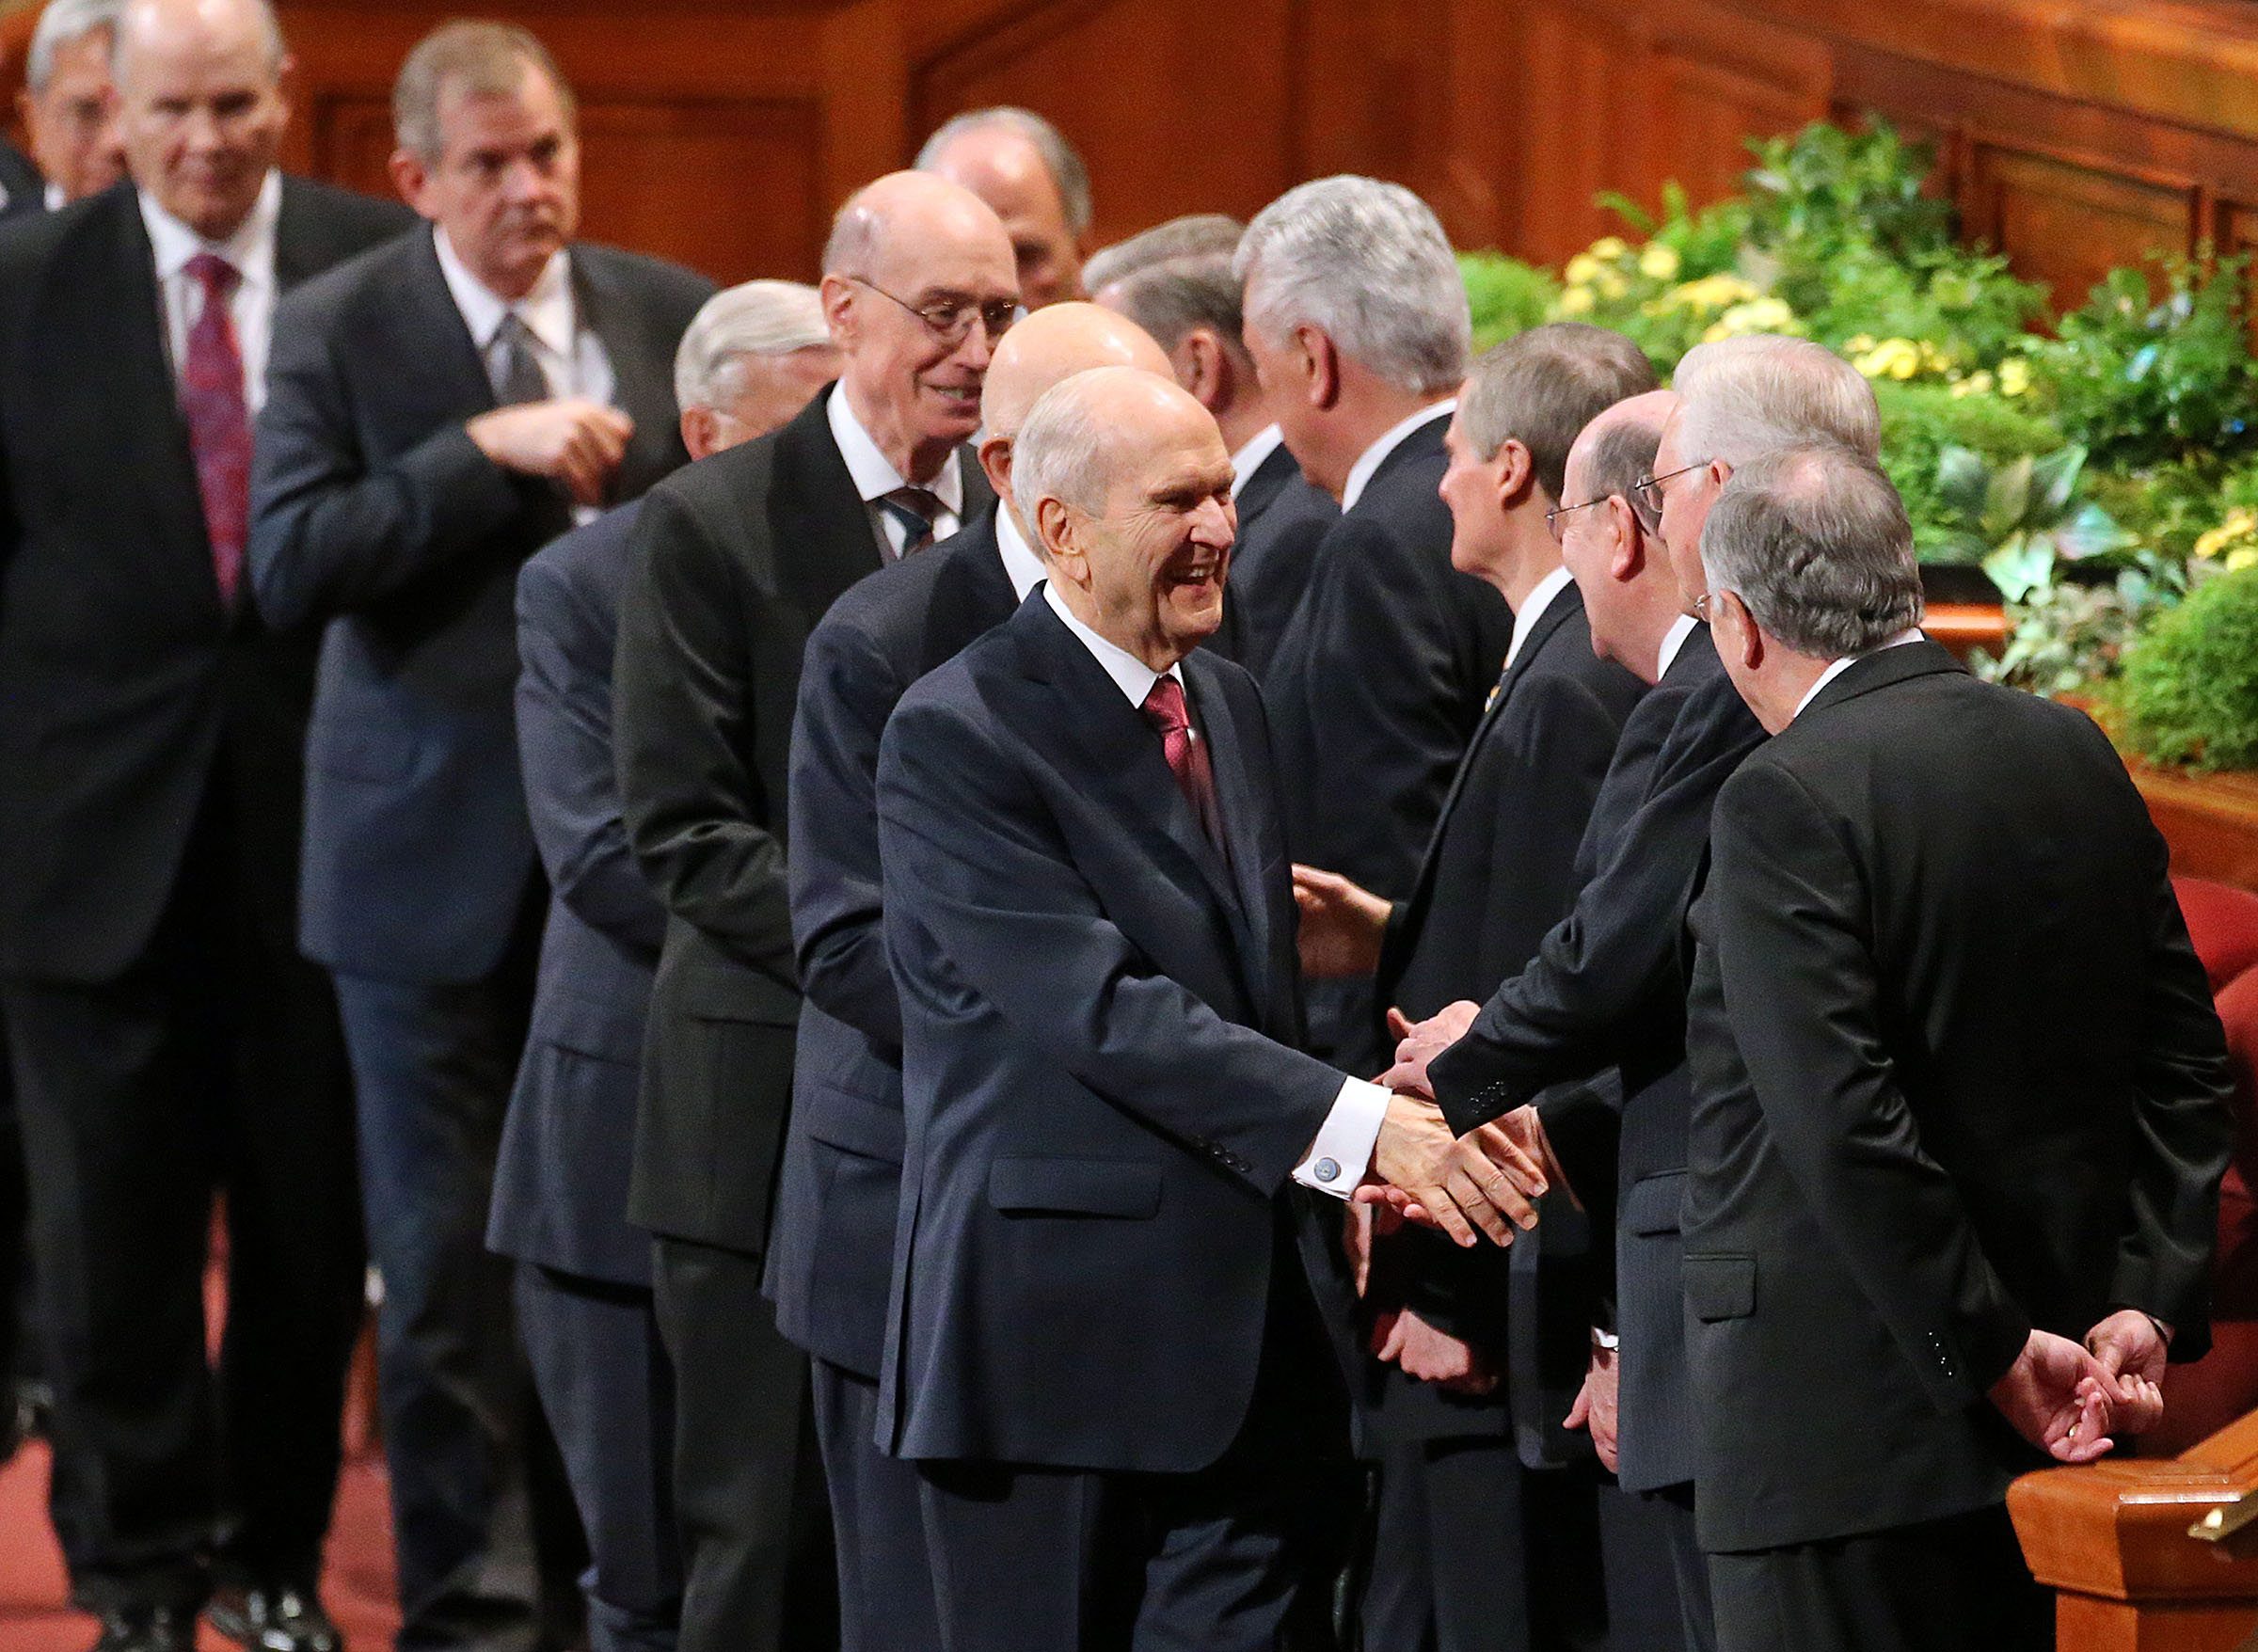 LDS Church President Russell M. Nelson leaves the Sunday morning session of the 188th Annual General Conference of The Church of Jesus Christ of Latter-day Saints at the Conference Center in Salt Lake City on Sunday, April 1, 2018.